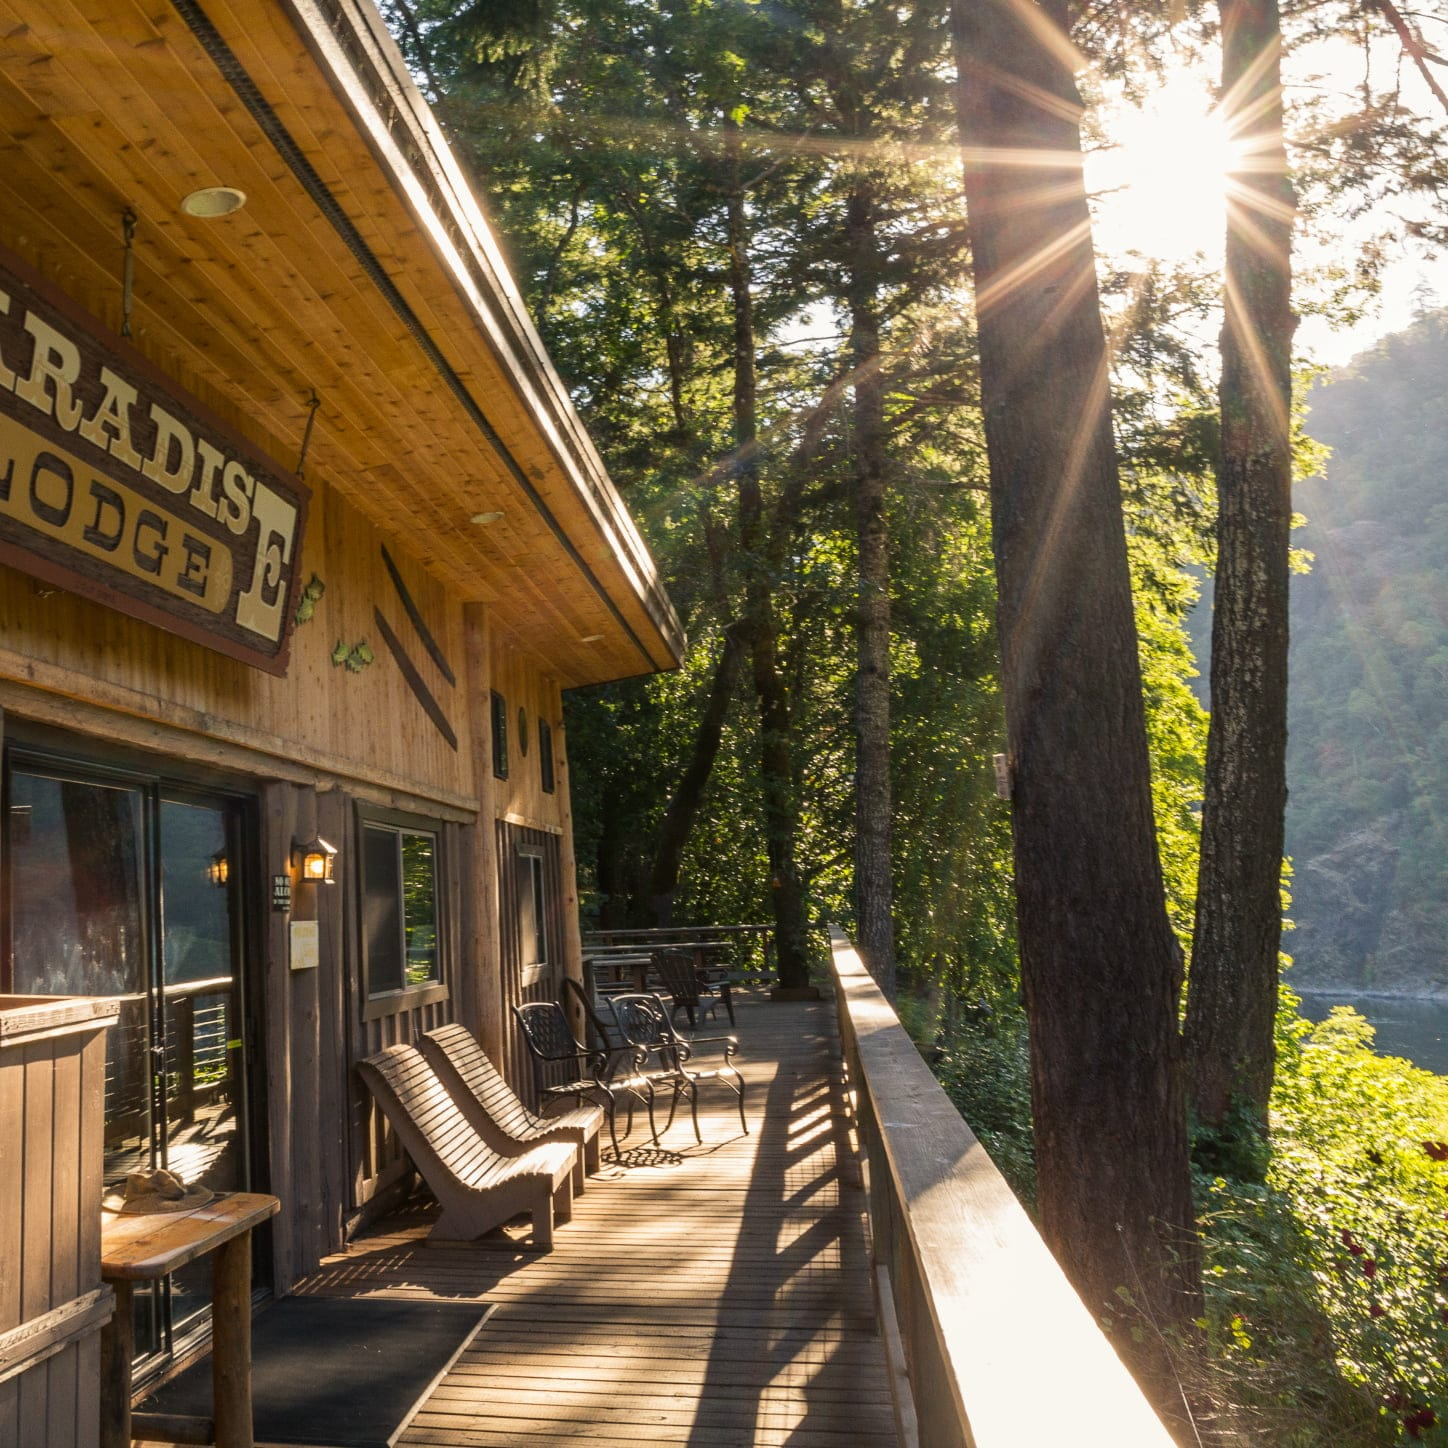 The beautiful deck of Paradise Lodge, one of our gorgeous locations along the Rogue River.